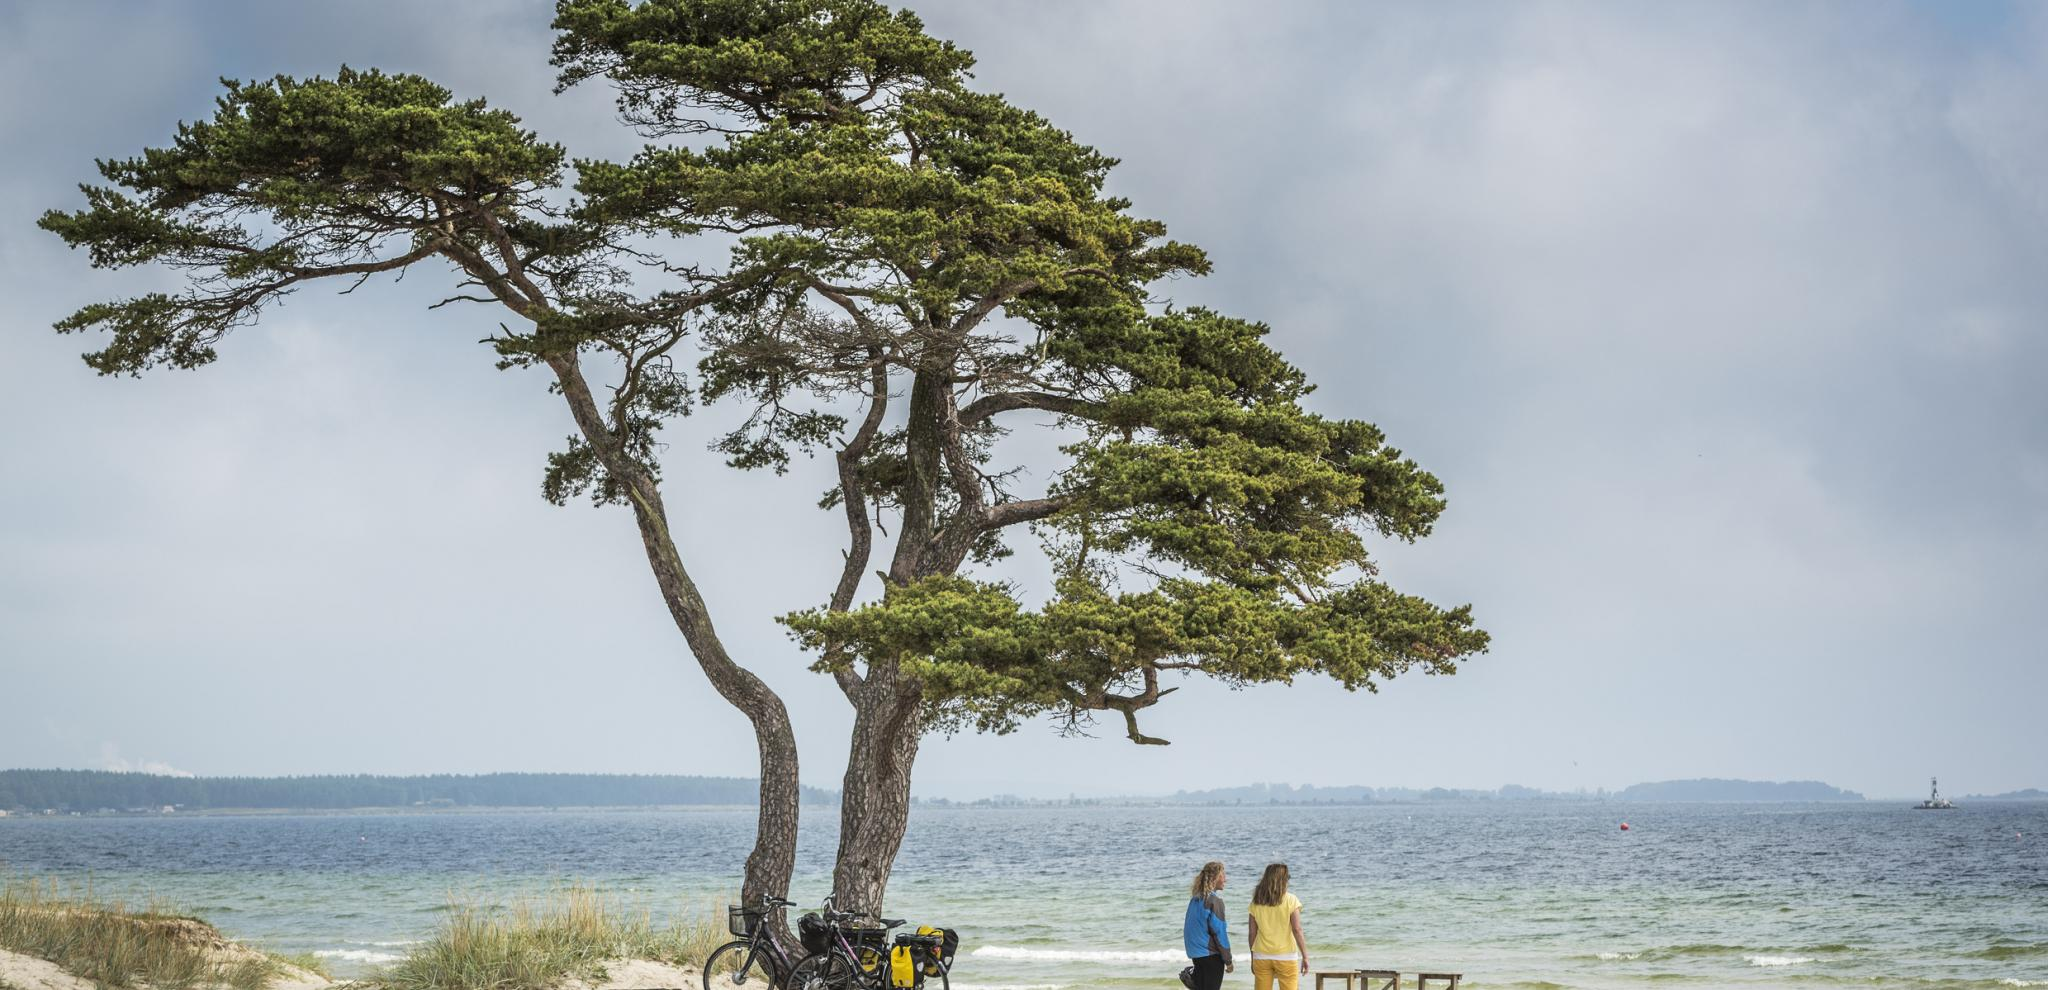 Tappet beach near Ahus with pinetree and biking women